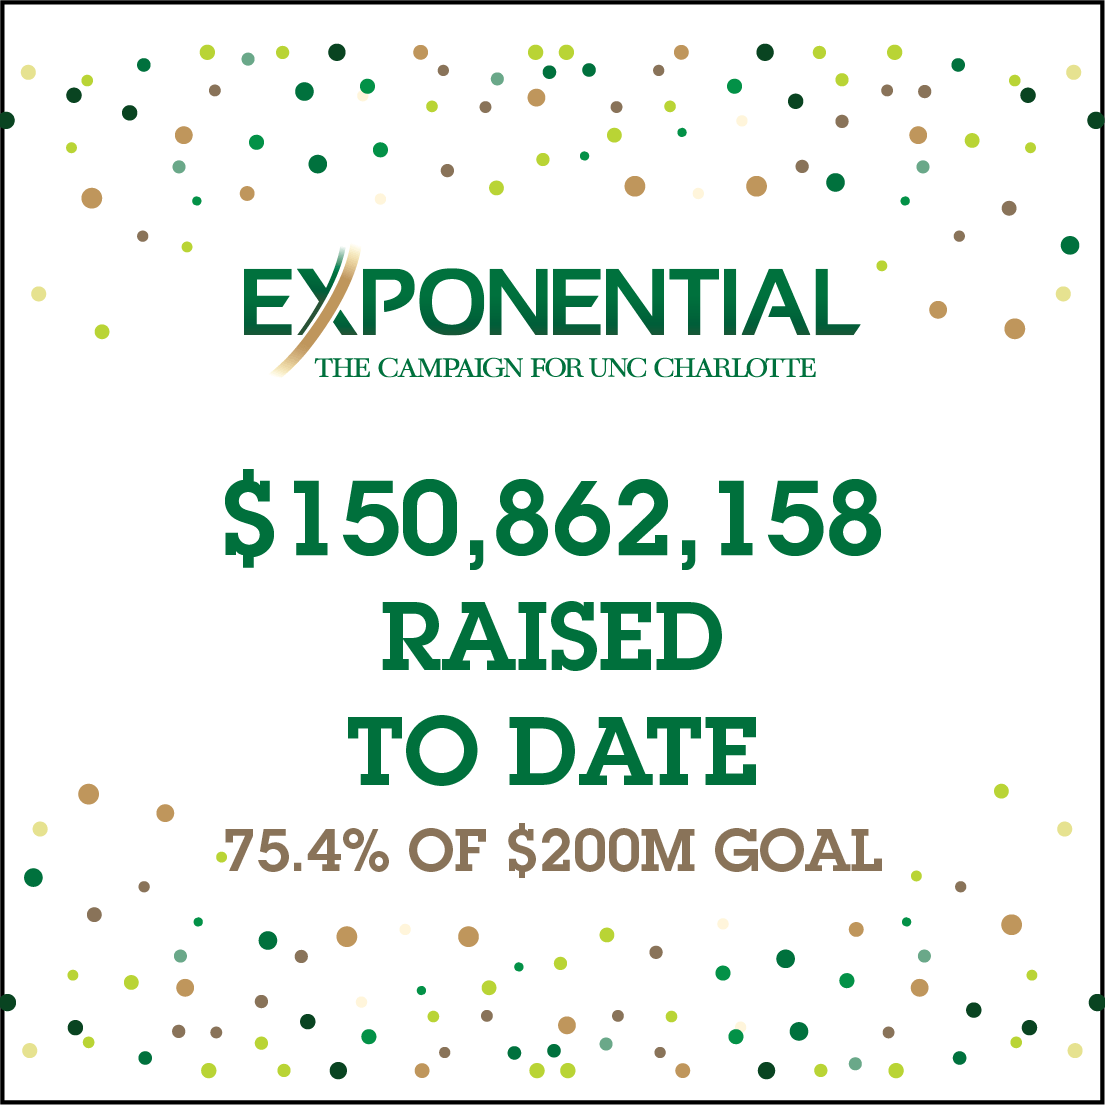 Exponential: $150,862,158 raised to date